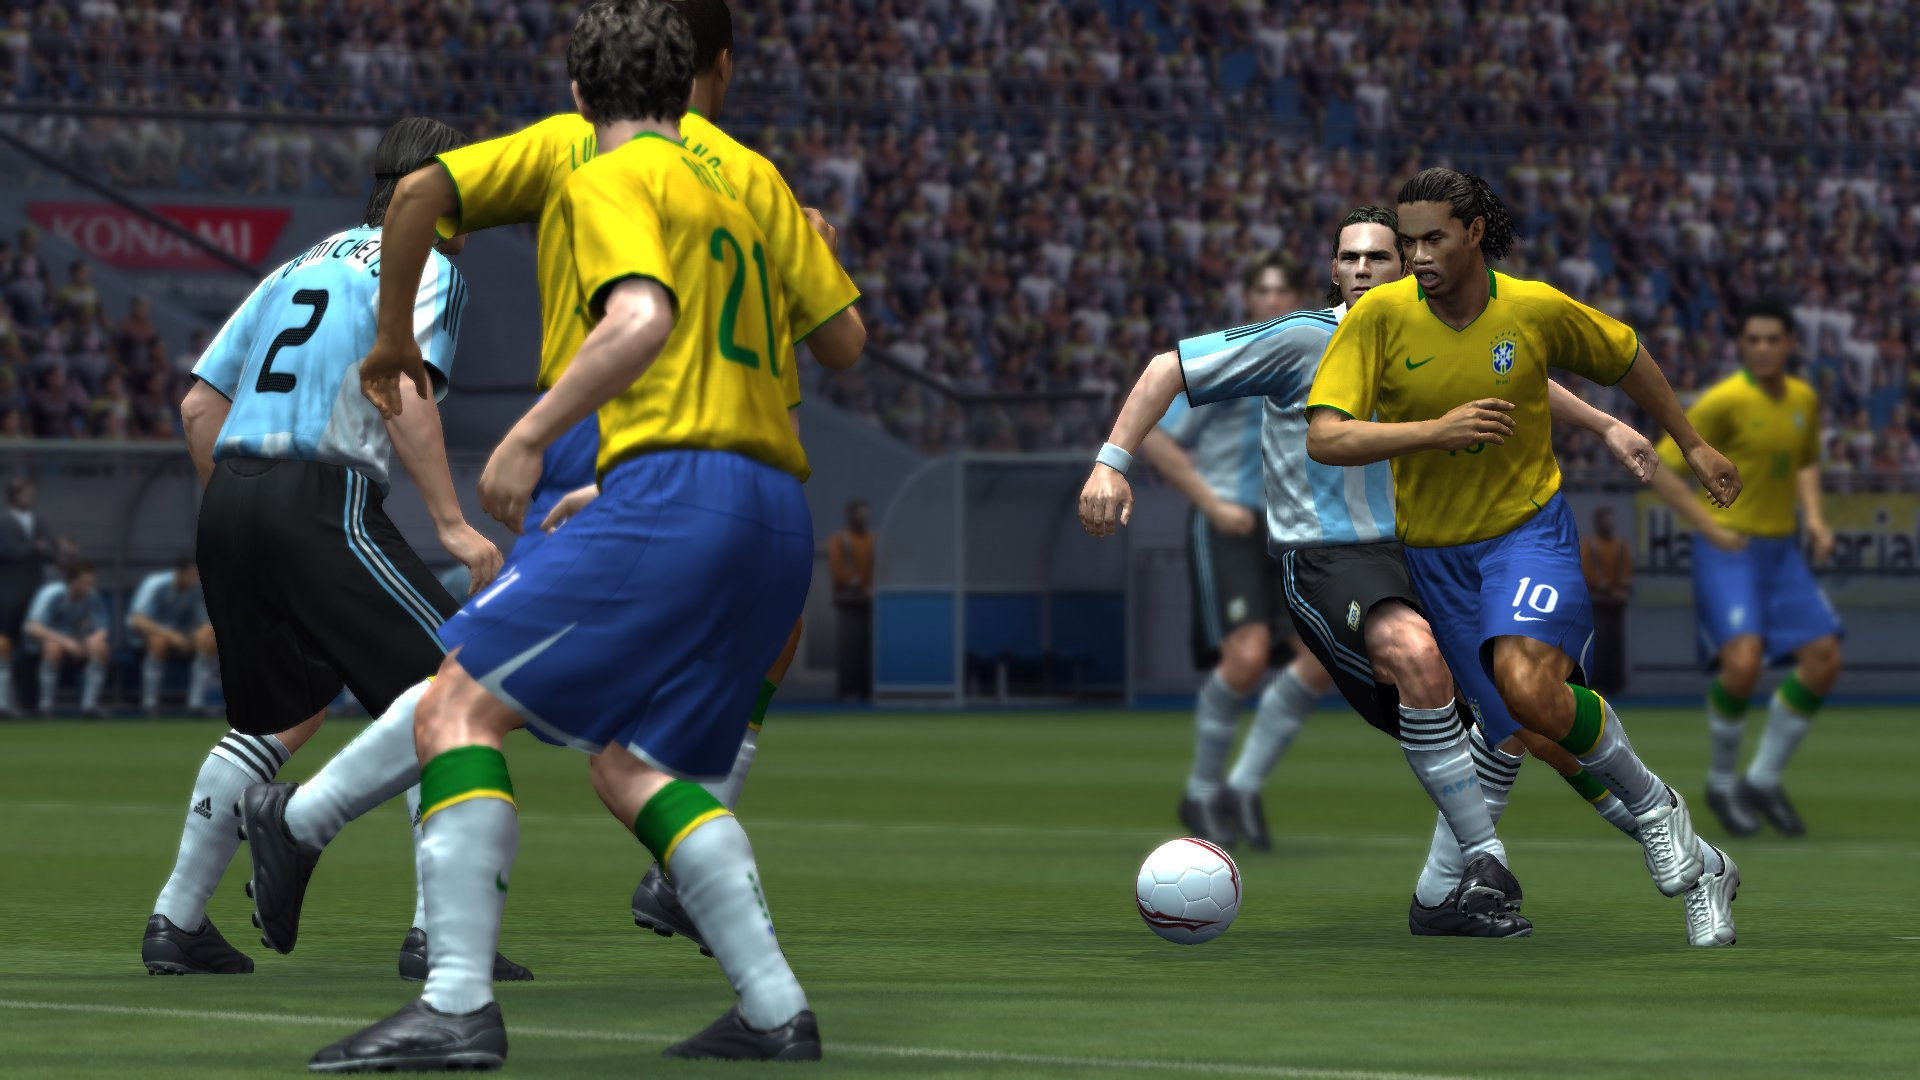 Konami announces PES 2009 for PS3, Xbox 360 and PC | GameWatcher